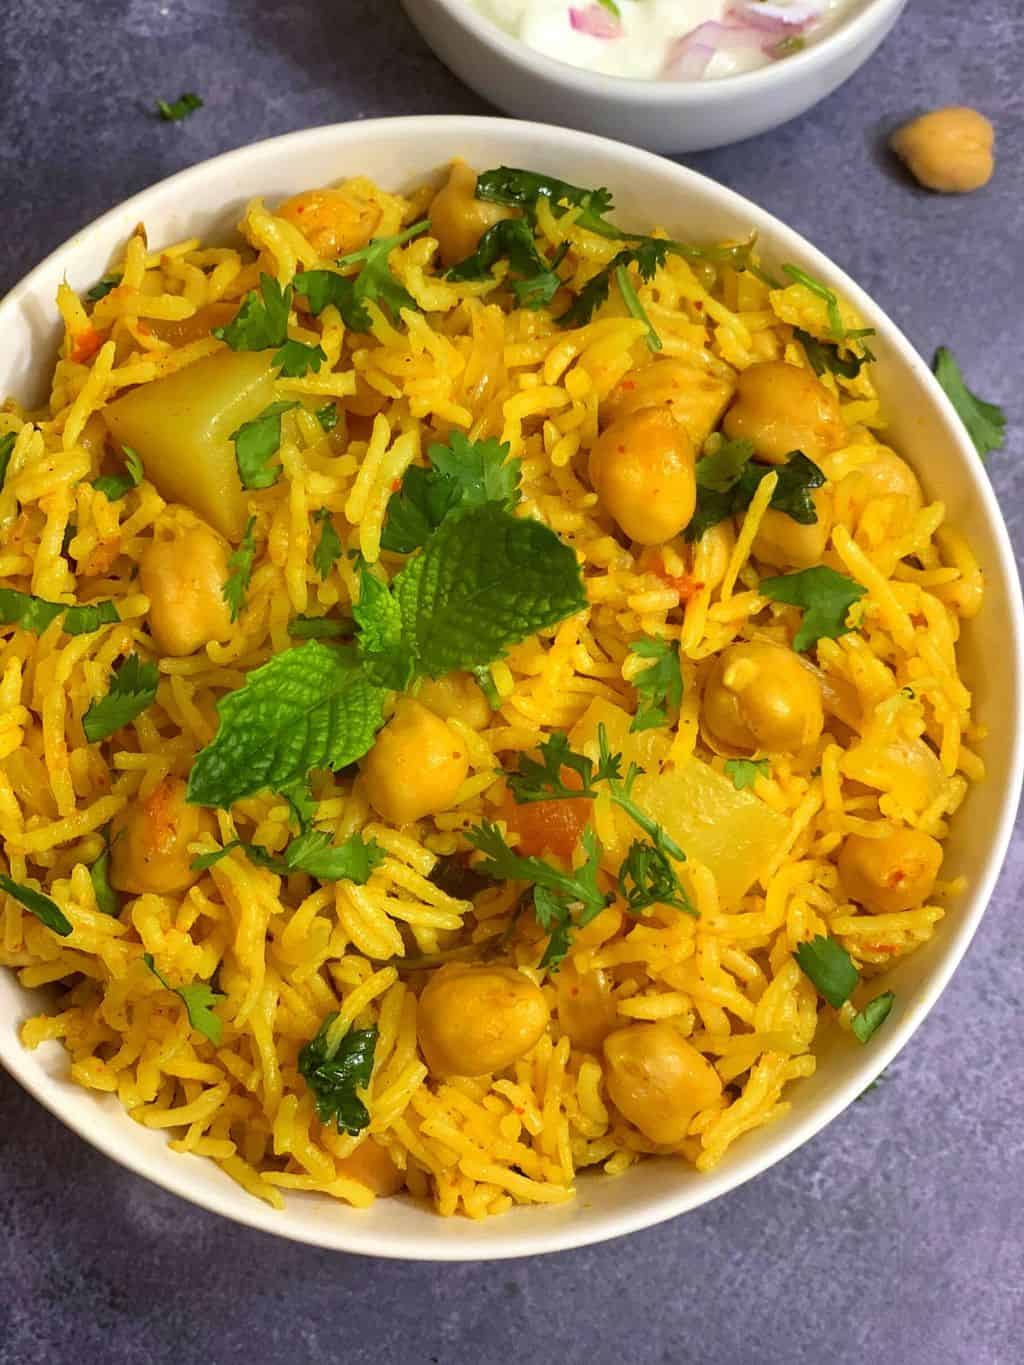 Instant Pot Chole Biryani|Chickpea Biryani|Garbanzo Beans Biryani is a delicious and healthy variation for vegetable biryani.Its a one-pot dish and can be made in less than 30 minutes.Its a great potluck or lunch box option for adults.